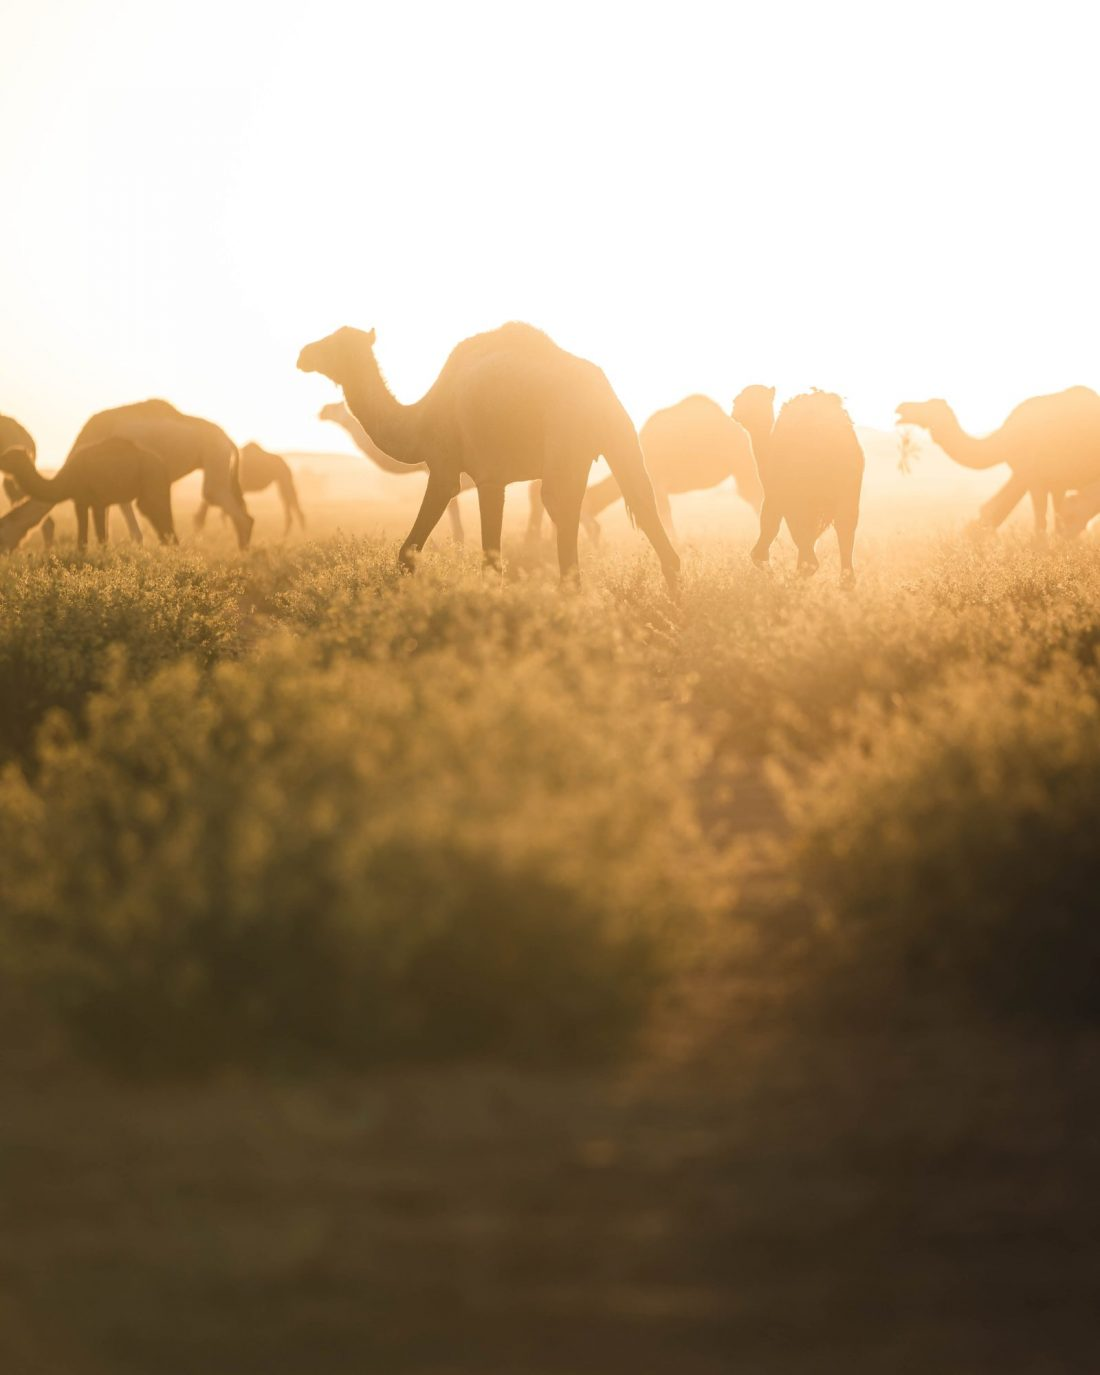 Alpha Male Camels walking with nomads